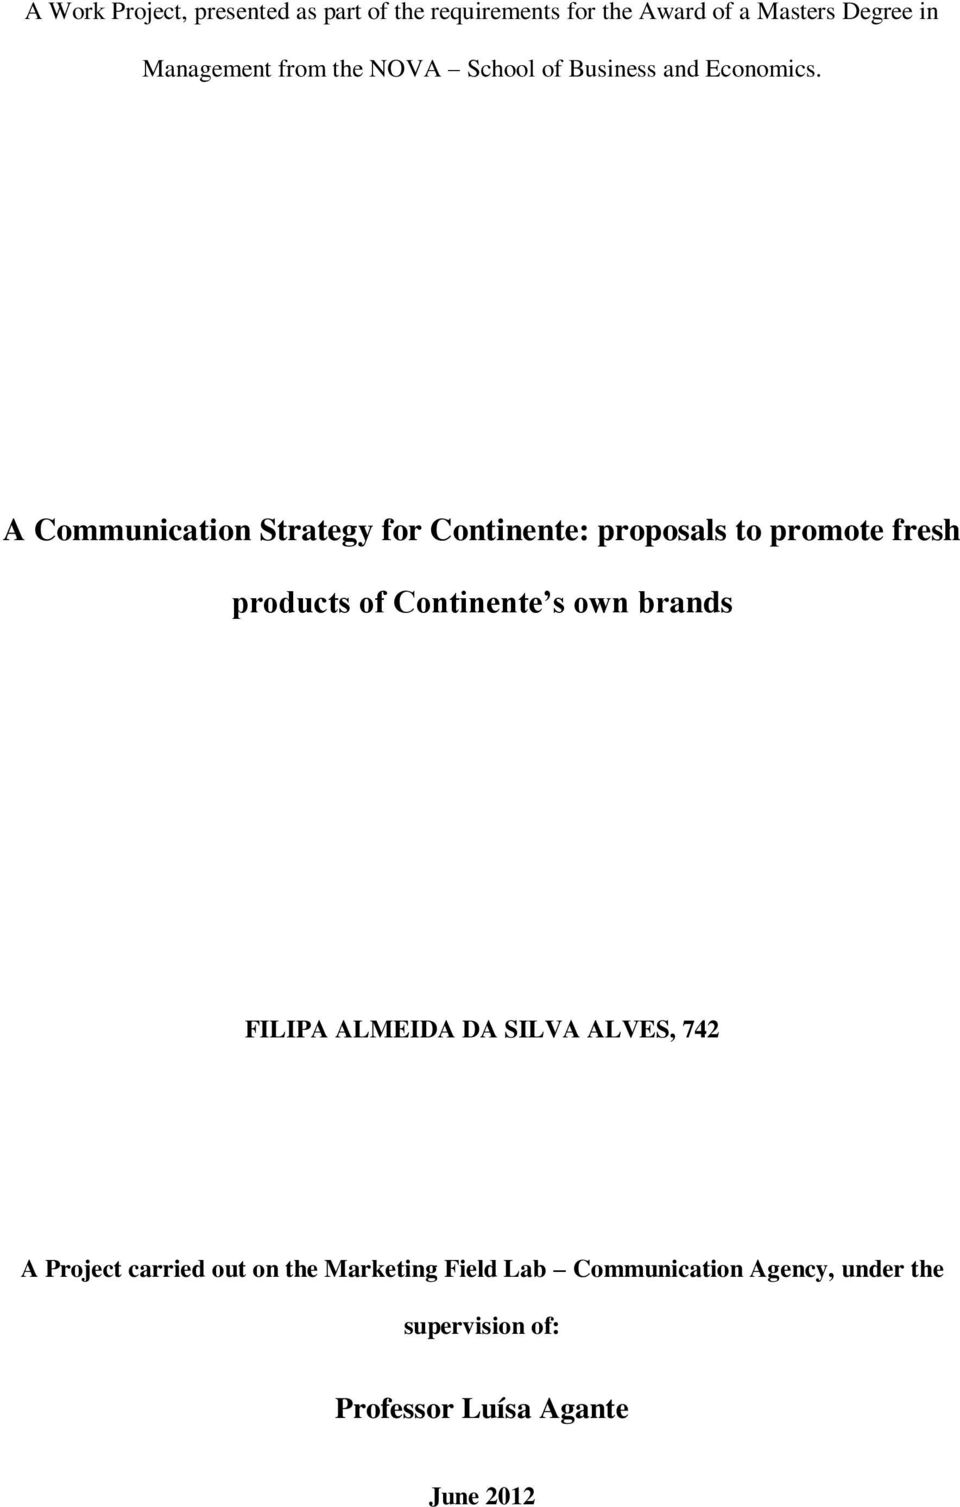 A Communication Strategy for Continente: proposals to promote fresh products of Continente s own brands